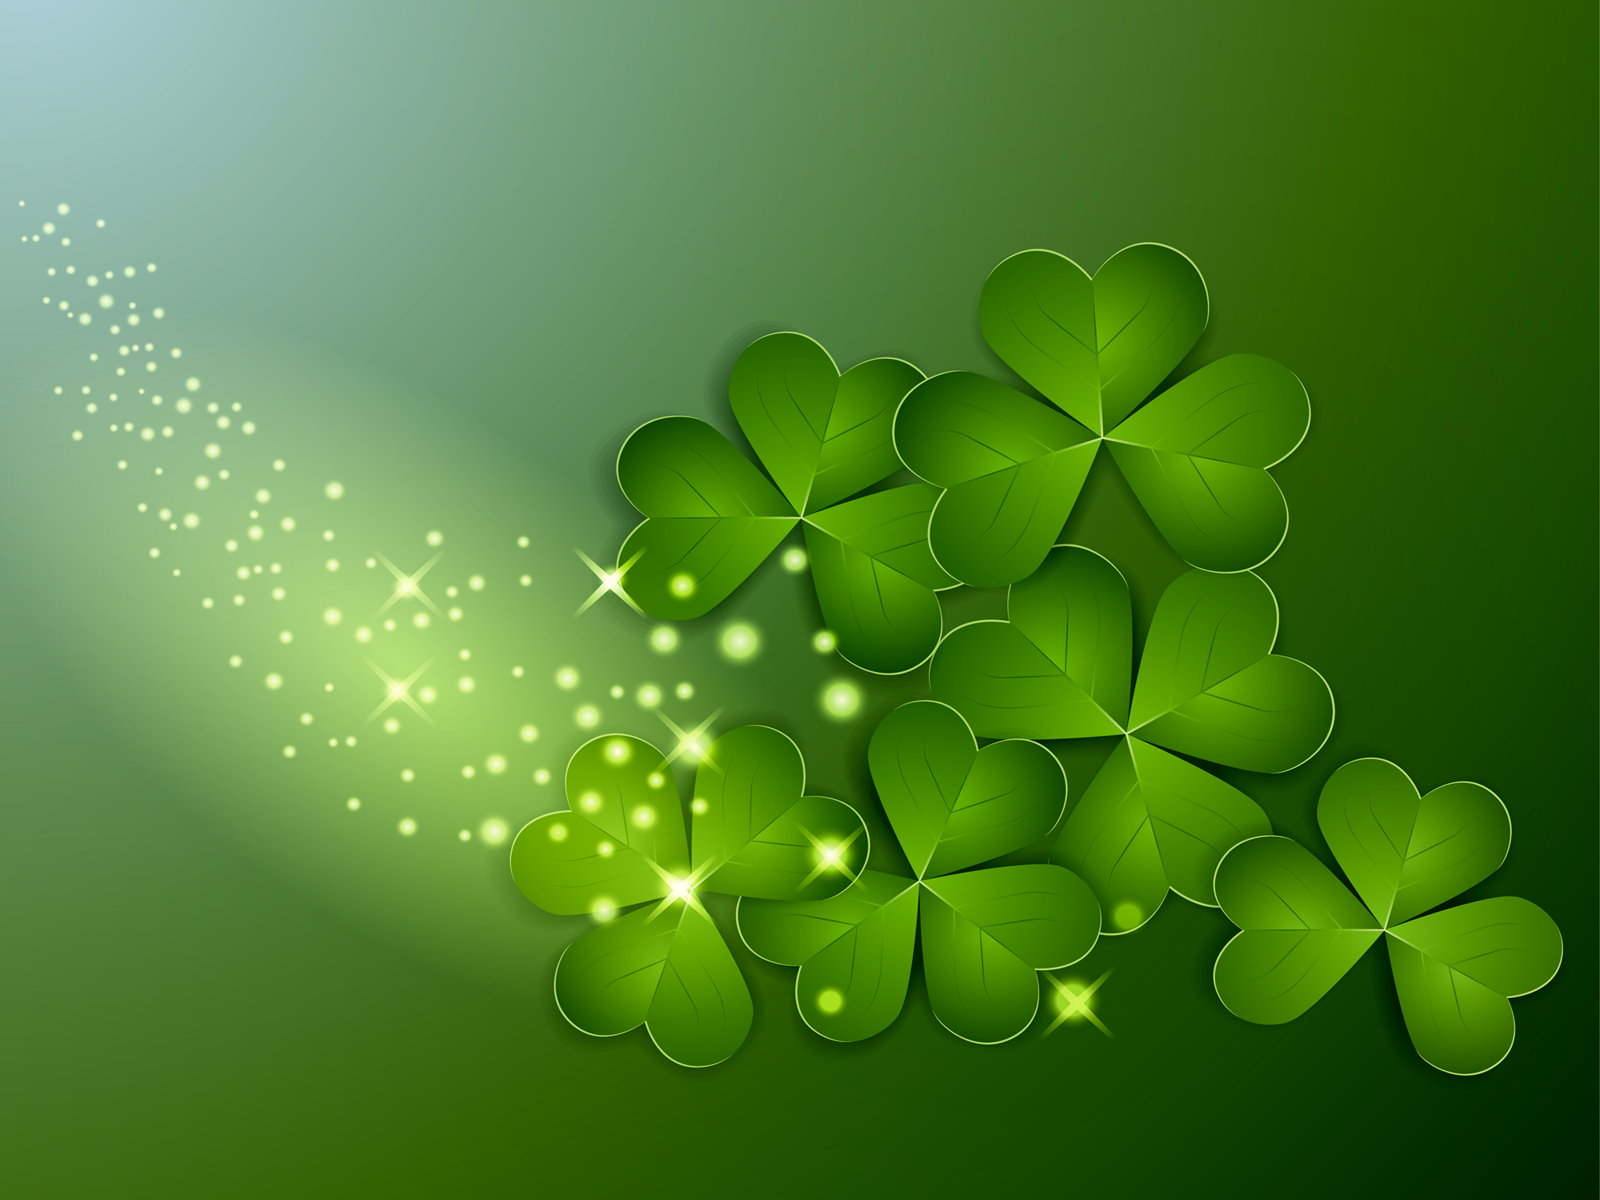 St Patricks Day Clover Wallpaper Gallery Yopriceville   High 1600x1200